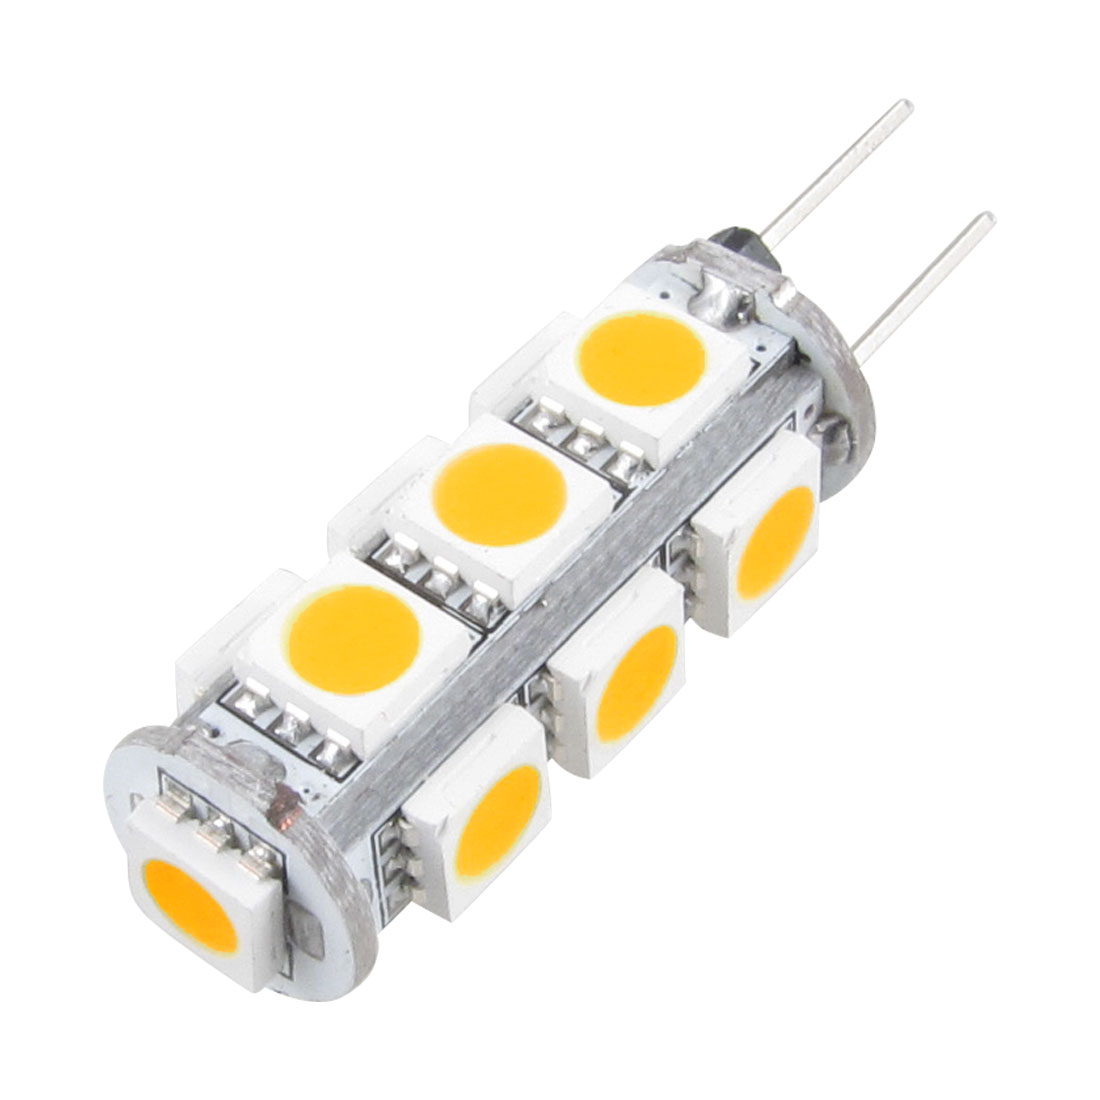 G4 13 SMD LED 5050 Warm White Car Boat Marine Lamp light Bulb DC 12V